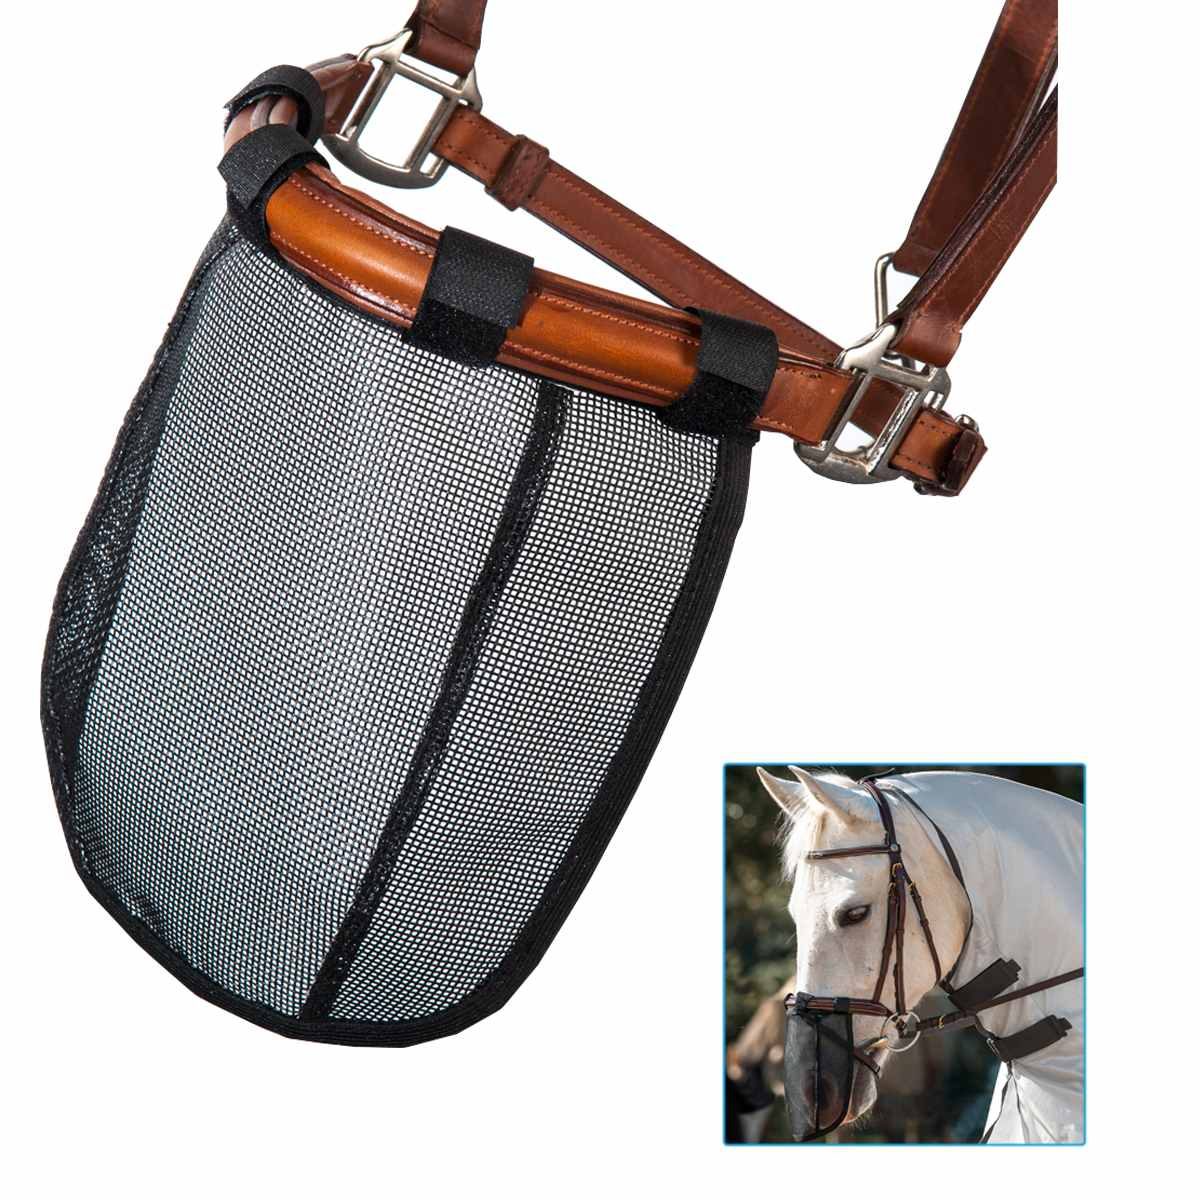 Mesh Horse Nose Mask Breathable Detachable Fly Mask Mosquito Proof Horse Face Mask Cover Equestrian Supply Equipment